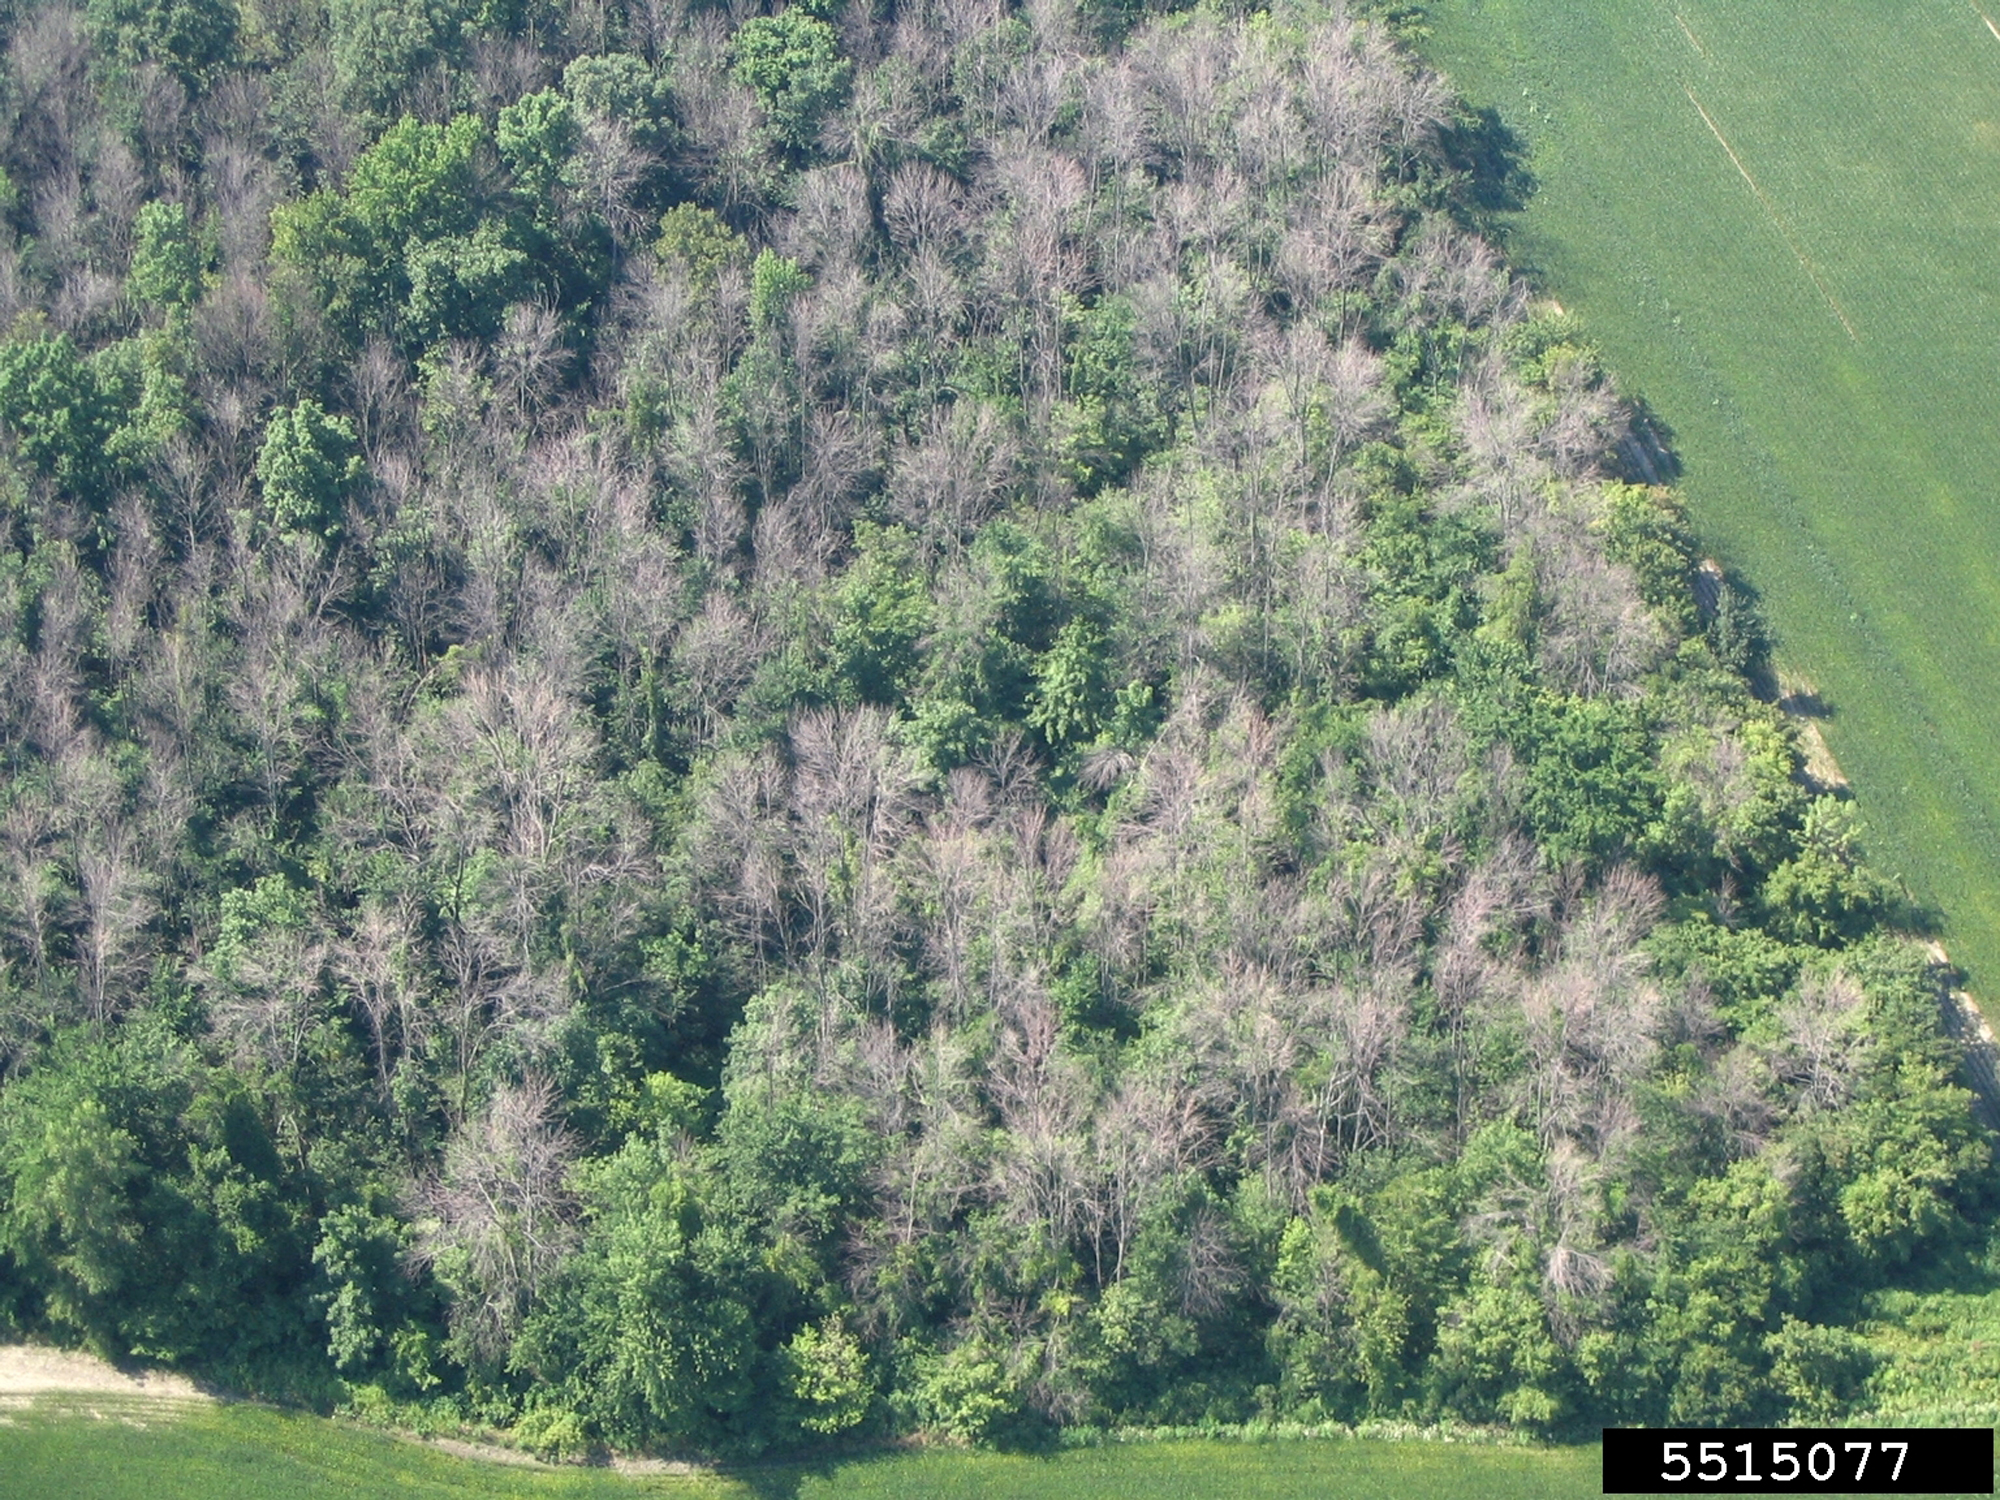 Many Dead Trees in Forest Because of EAB